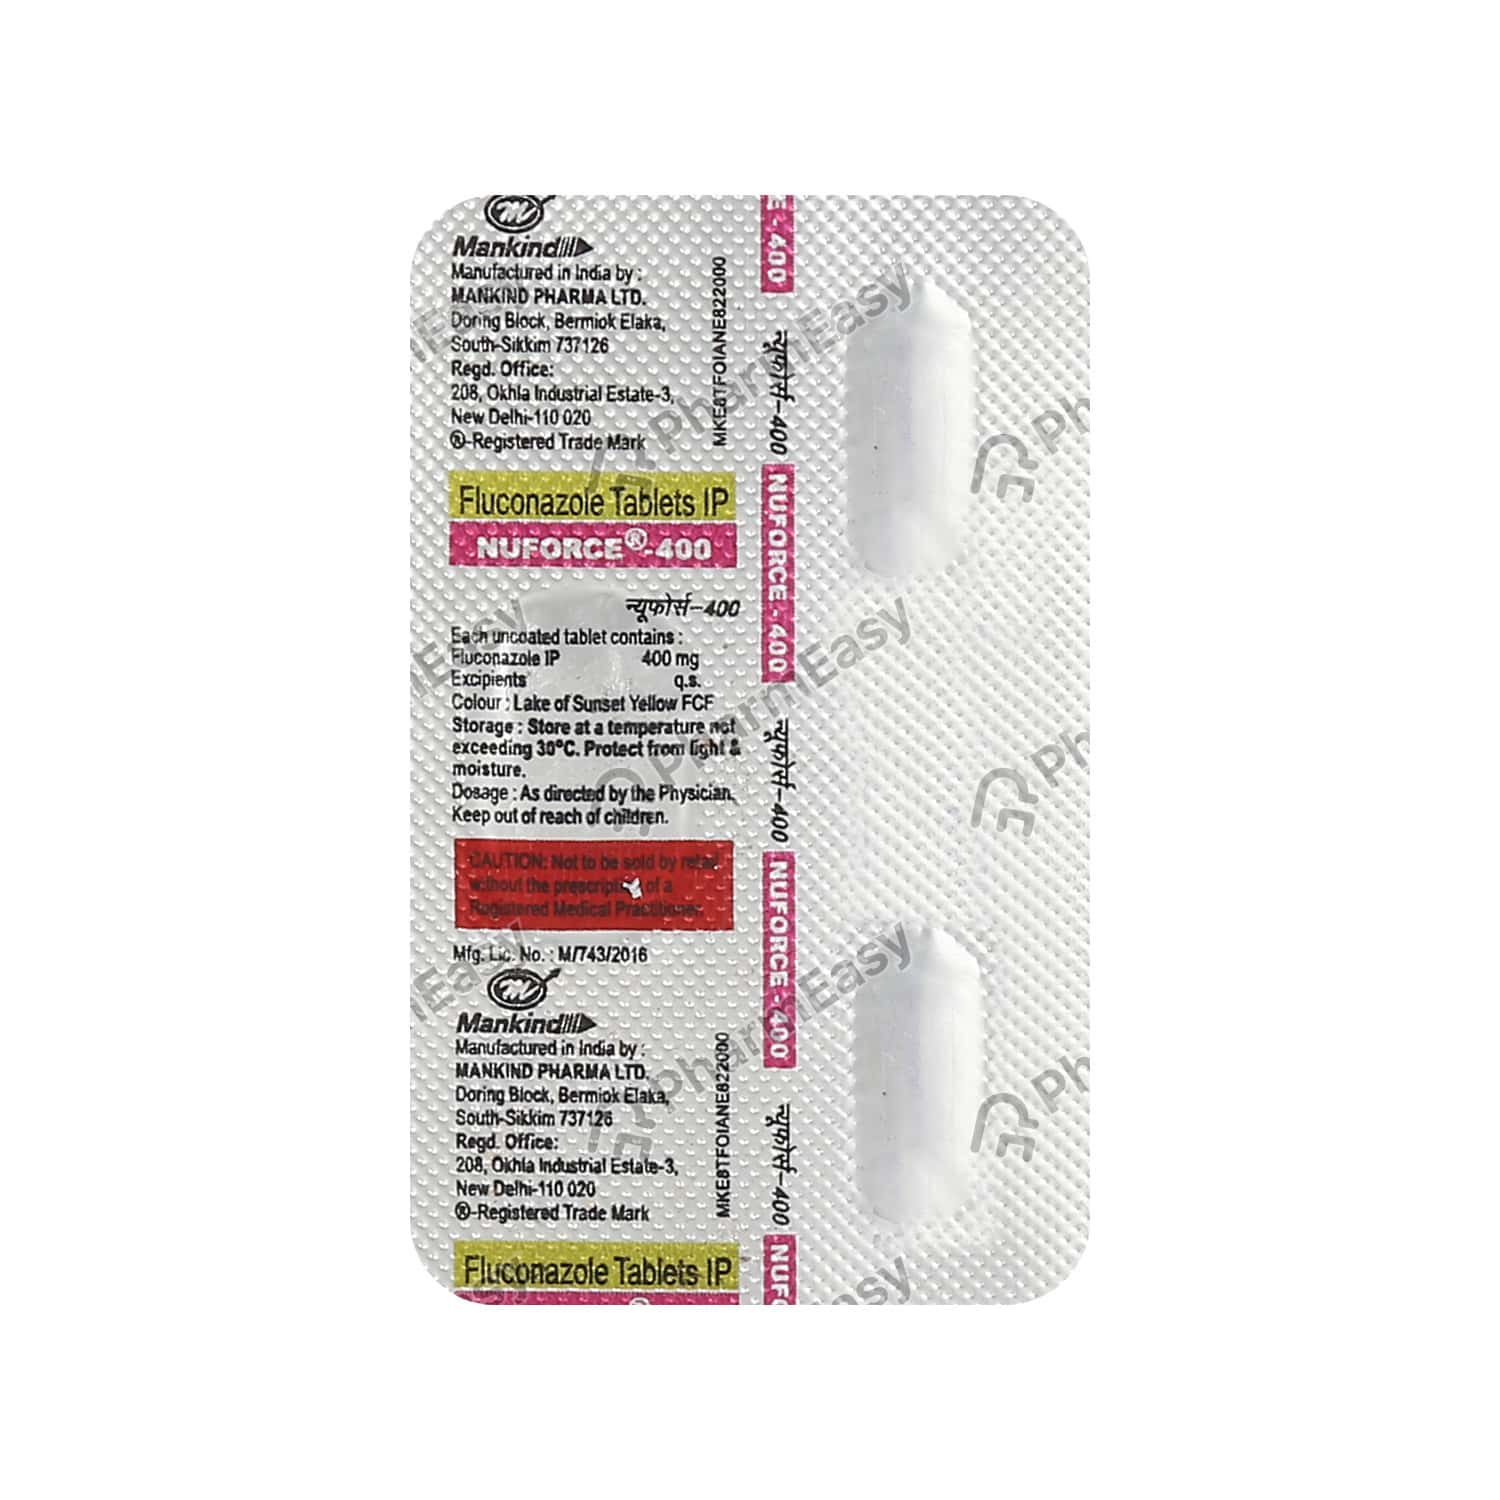 Nuforce 400mg Tablet